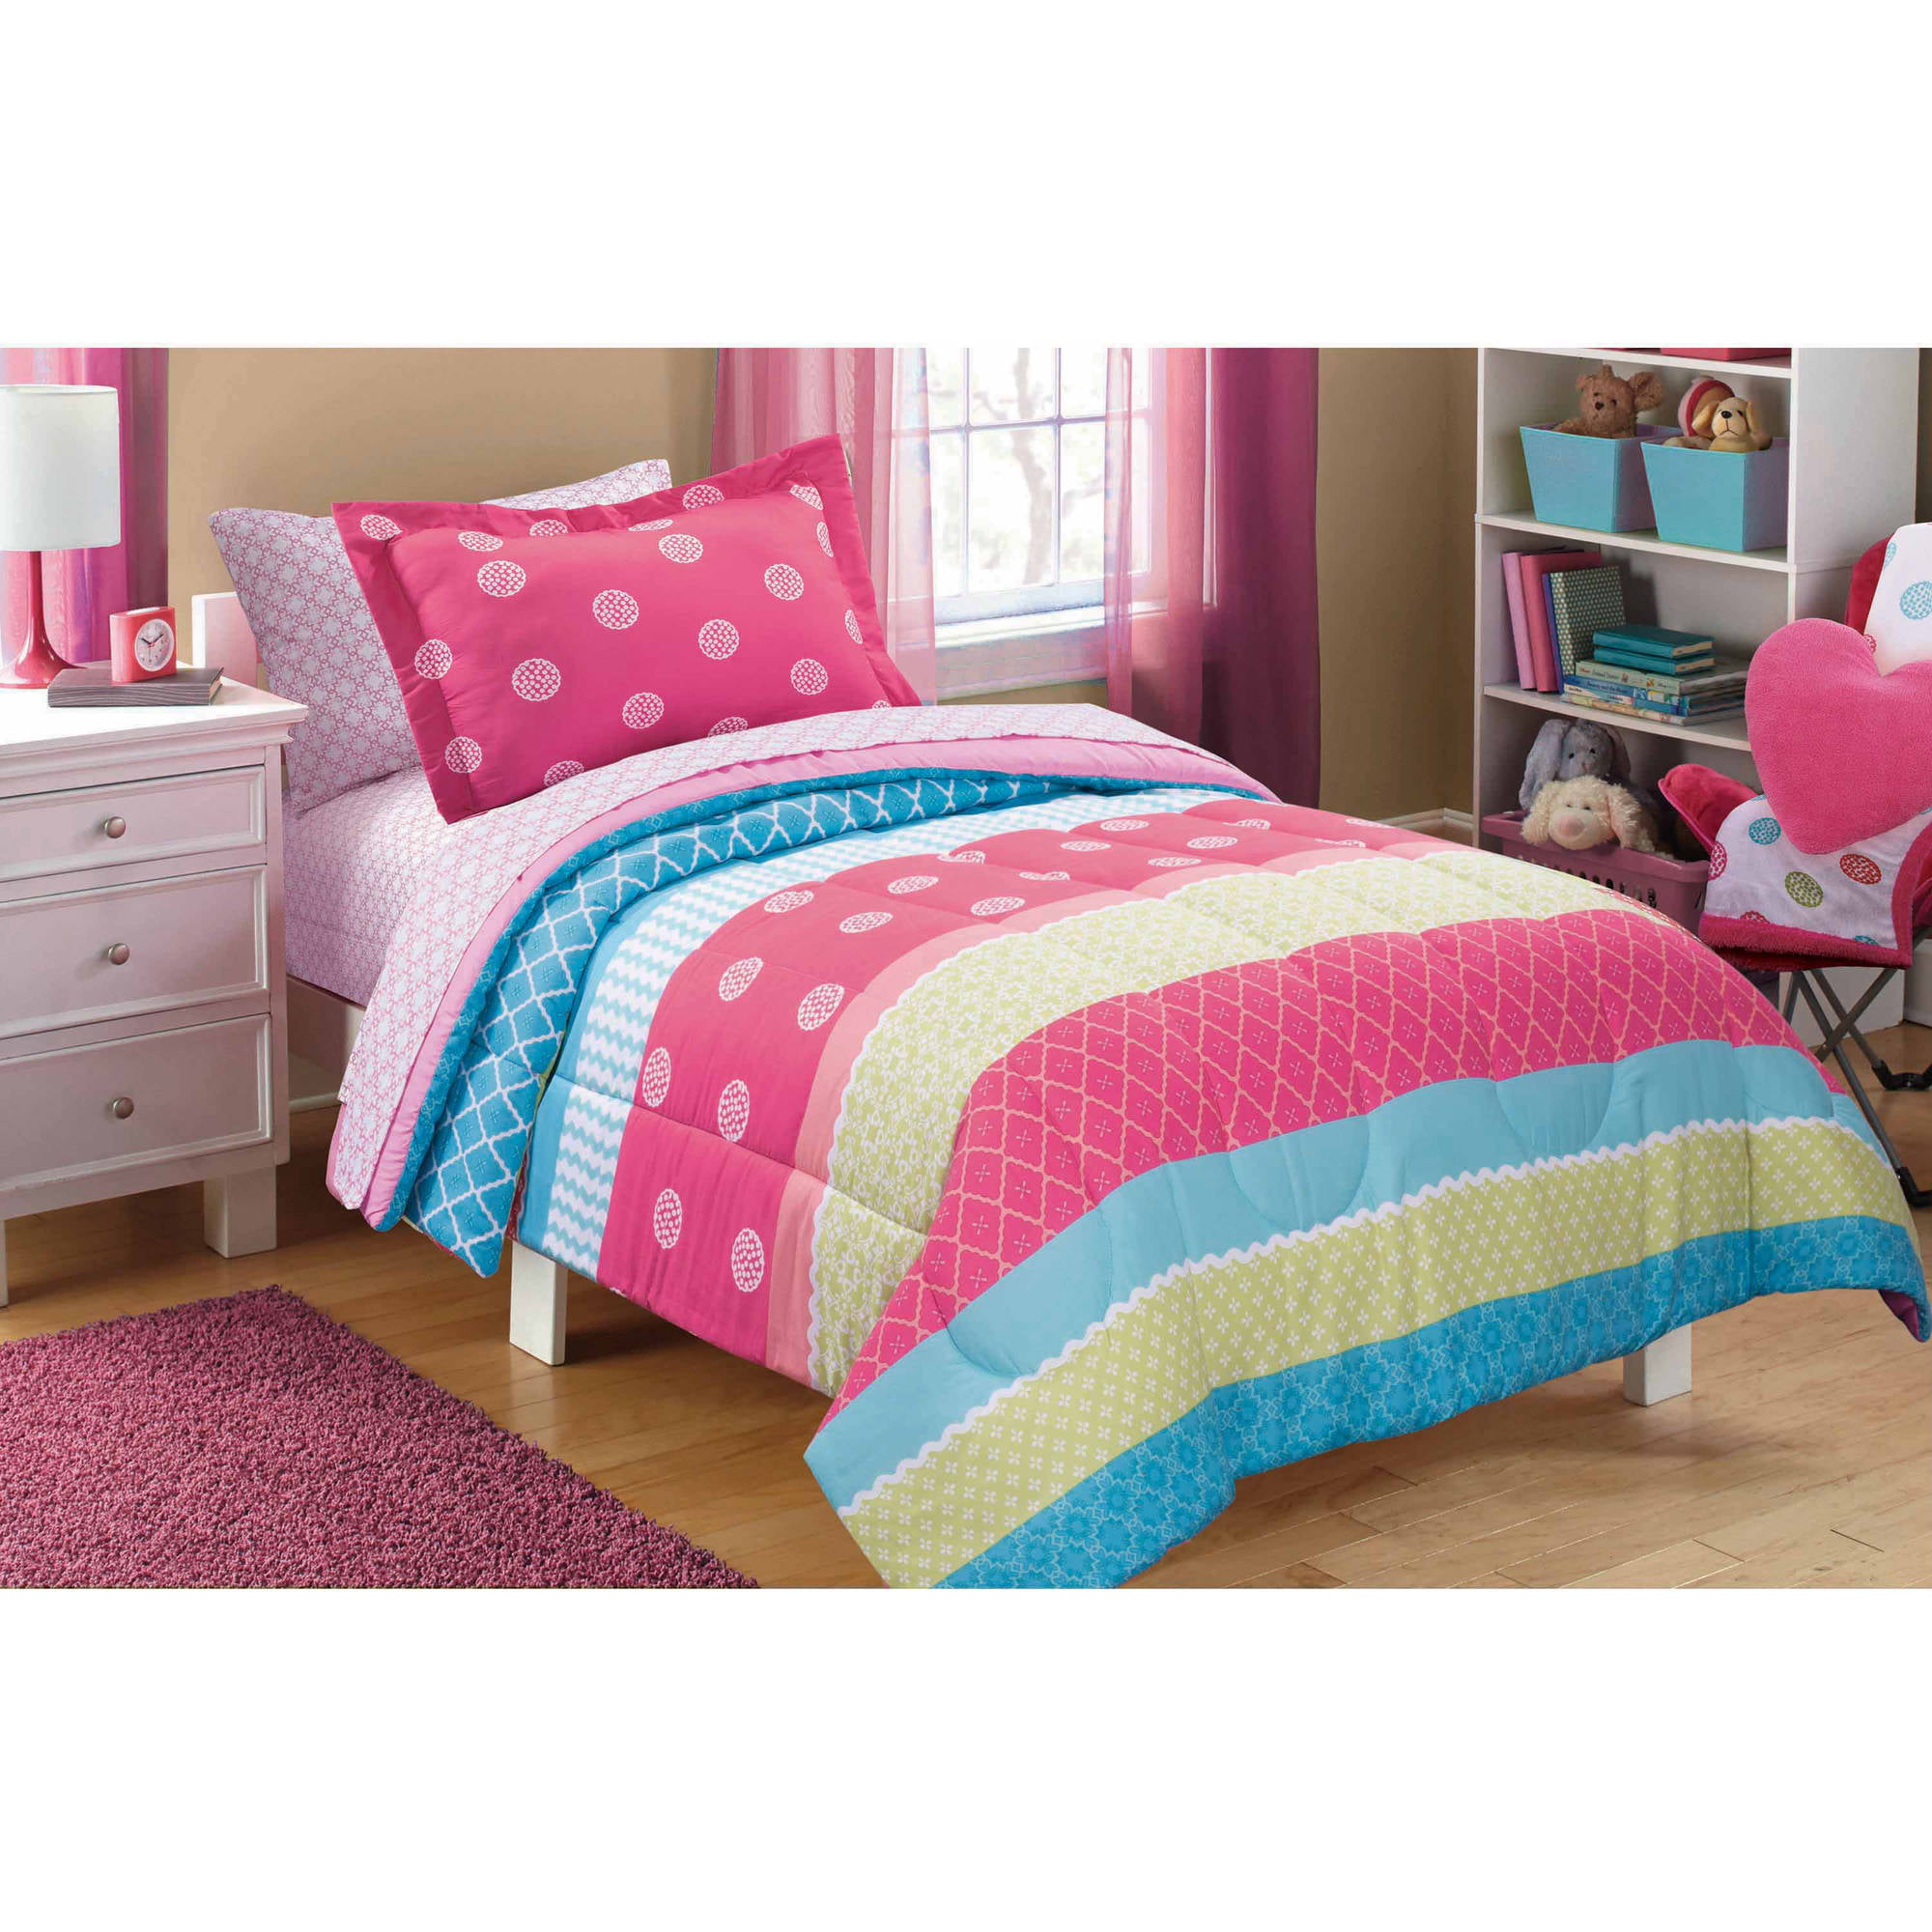 bedding maya a bed kids comforter p girls in butterfly bag set